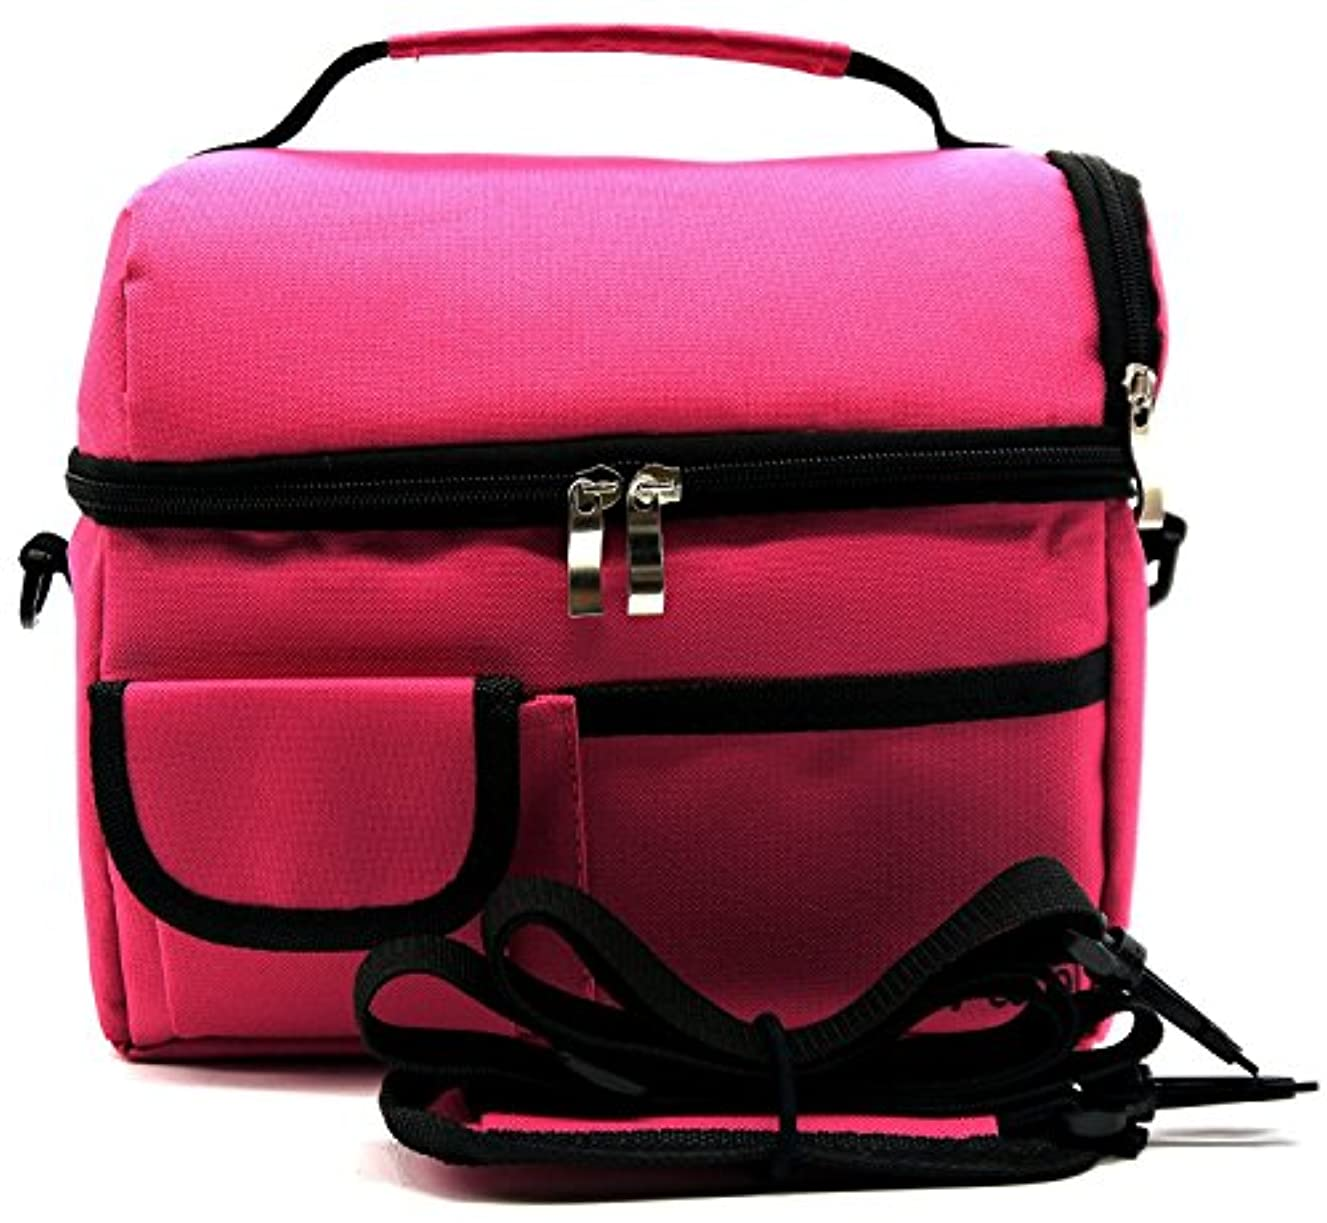 ReaLegend Lunch Bag Cooler Carry Bag Insulated Tote Large Capacity with Adjustable Shoulder Strap Allerbaby Bento Box Bag Travel Lunch Tote - Rose